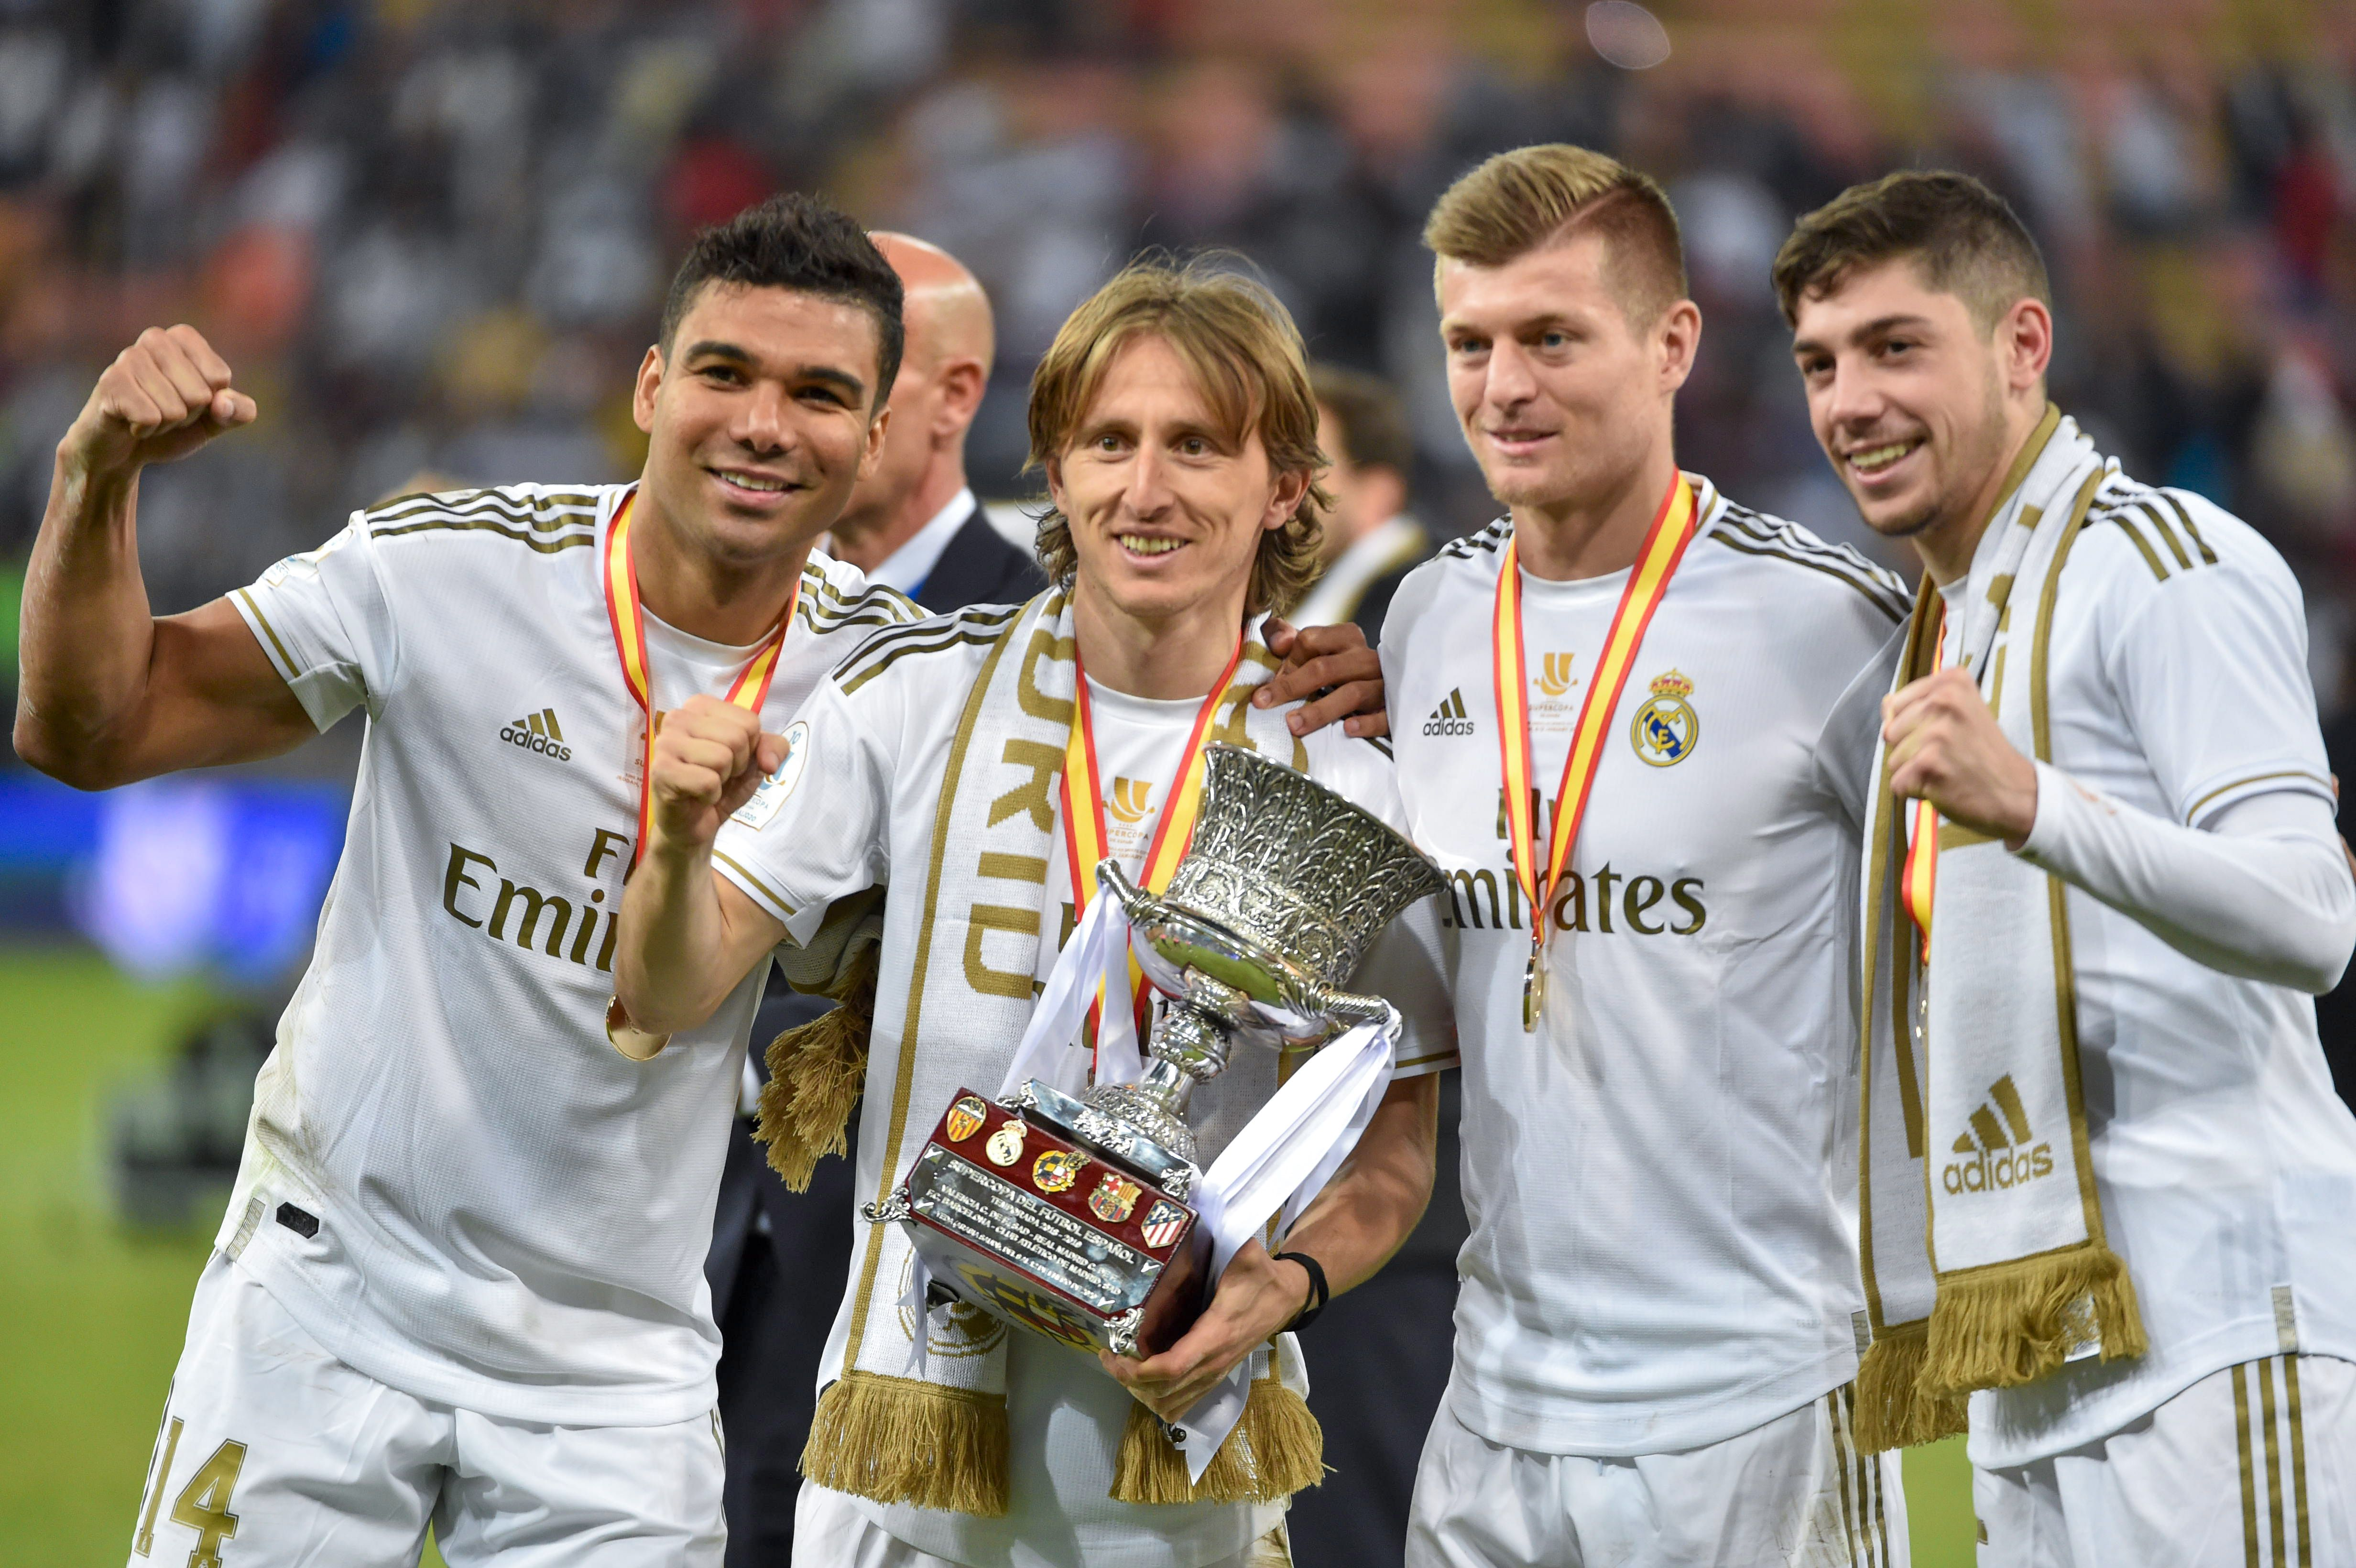 Casemiro, Modric and Kroos - an indomitable midfield partnership (Photo by FAYEZ NURELDINE/AFP via Getty Images)